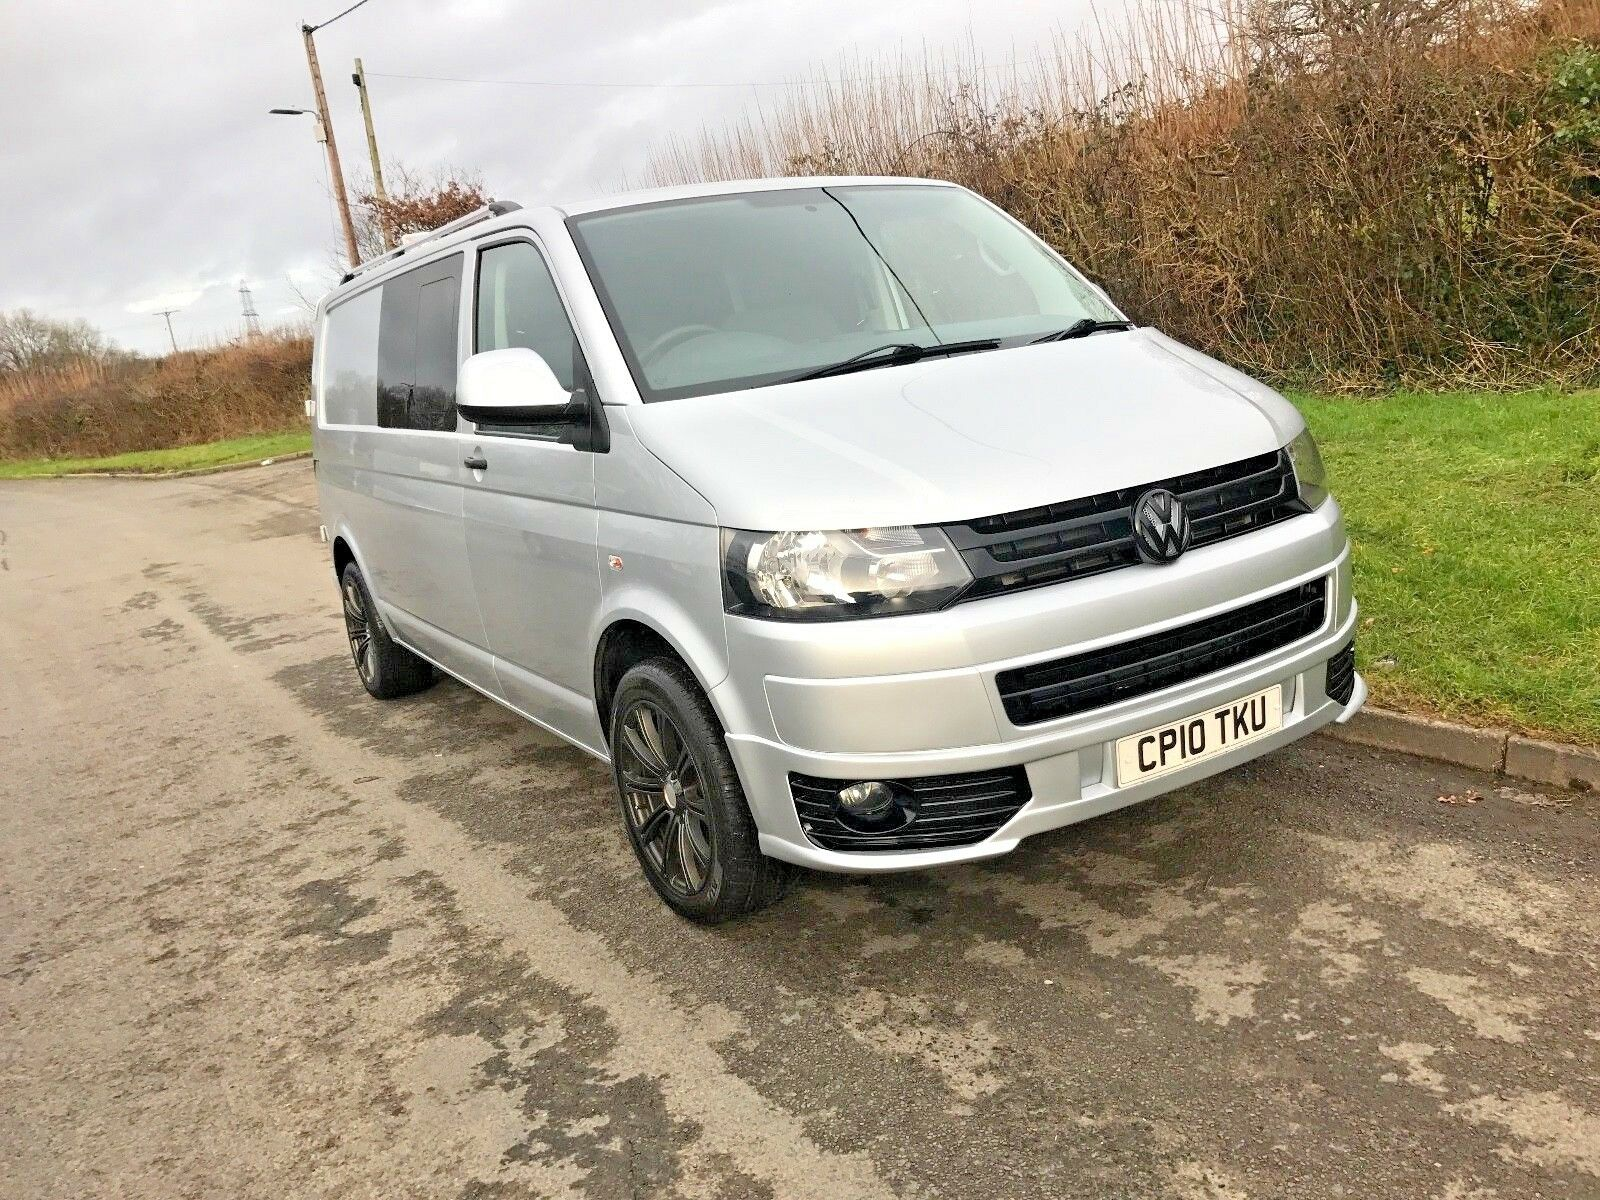 2010 vw transporter t5 kombi 140bhp 6 speed no vat 14 picclick uk. Black Bedroom Furniture Sets. Home Design Ideas